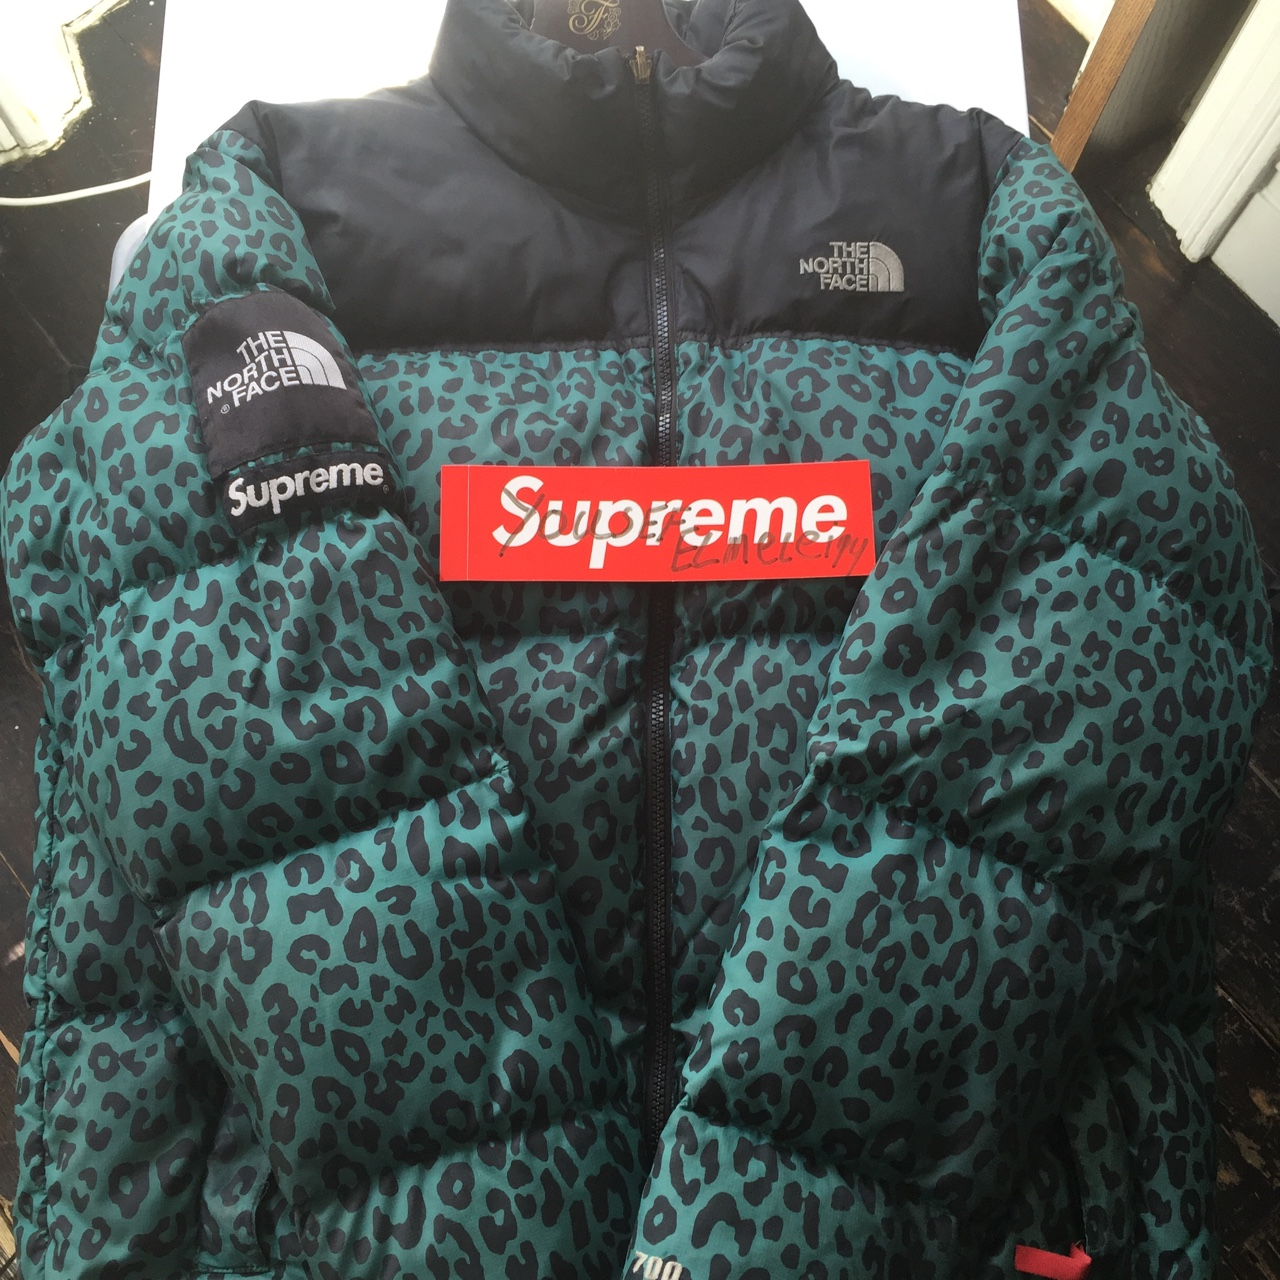 29c8167a3 Supreme x The north face green leopard nuptse... - Depop